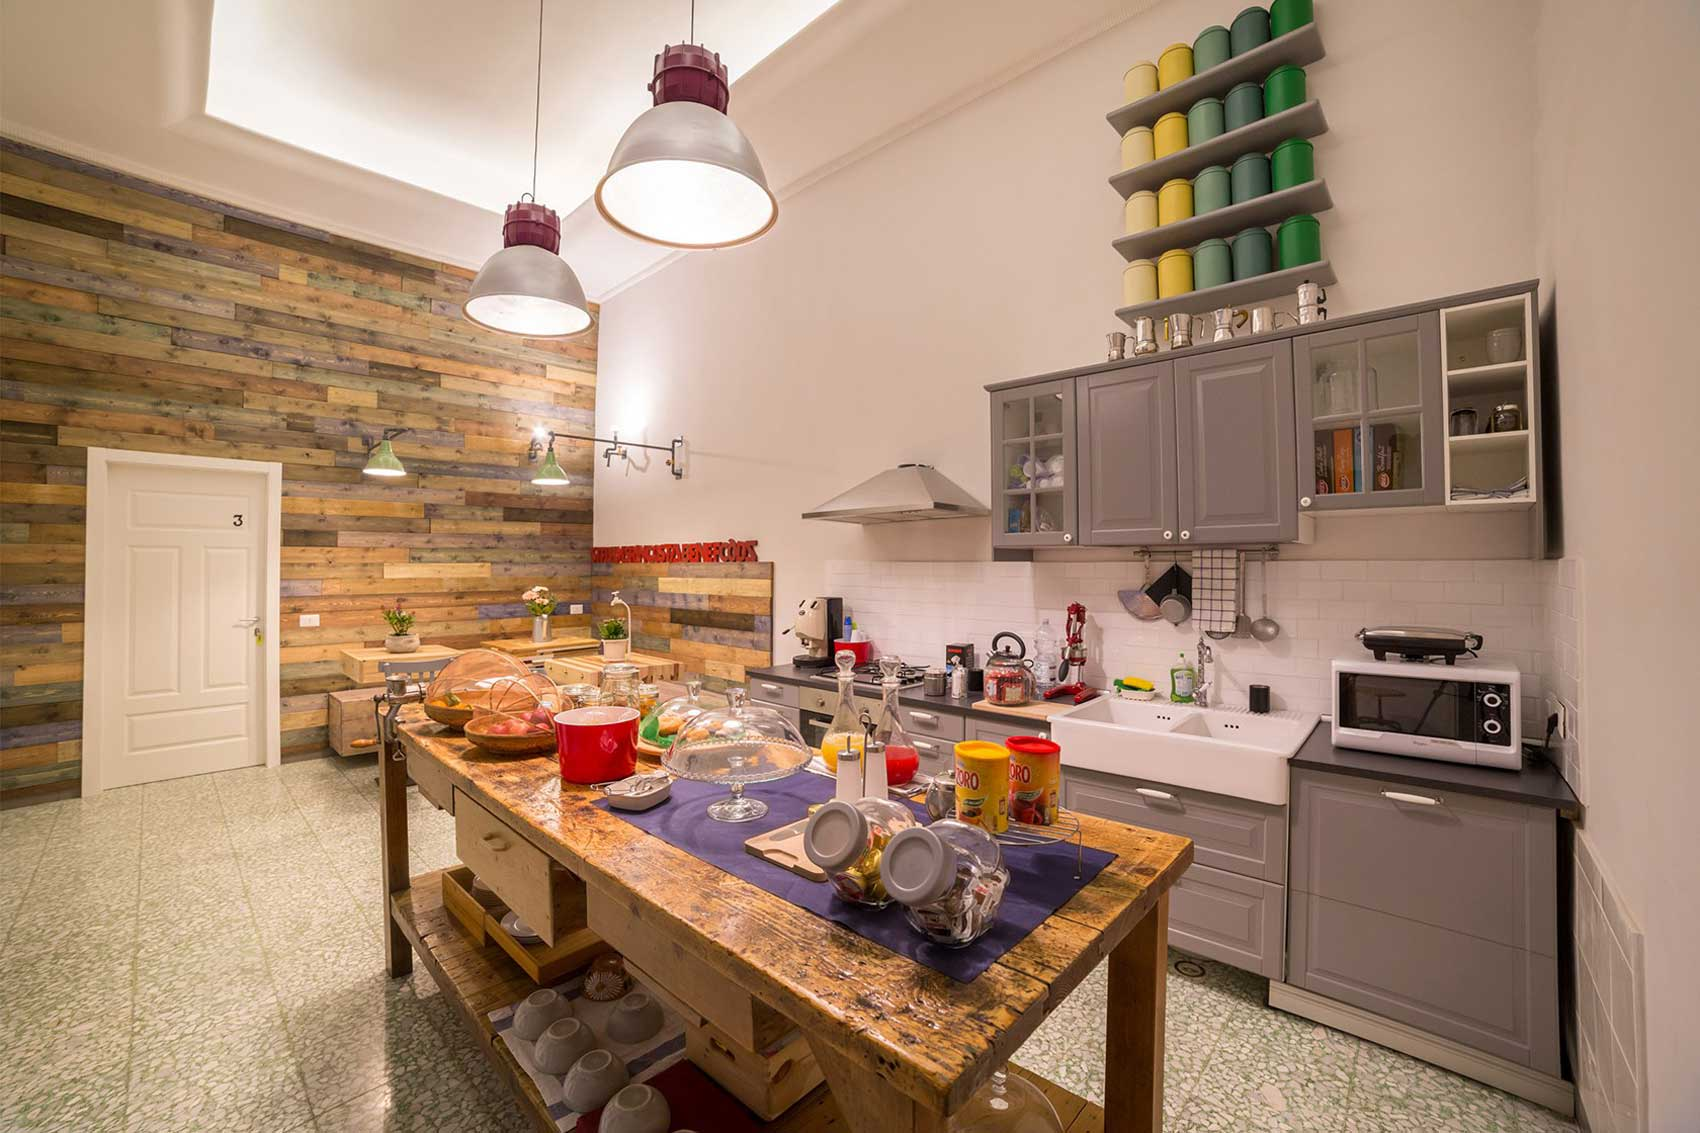 The Foria House Bed and Breakfast Napoli (cucina)